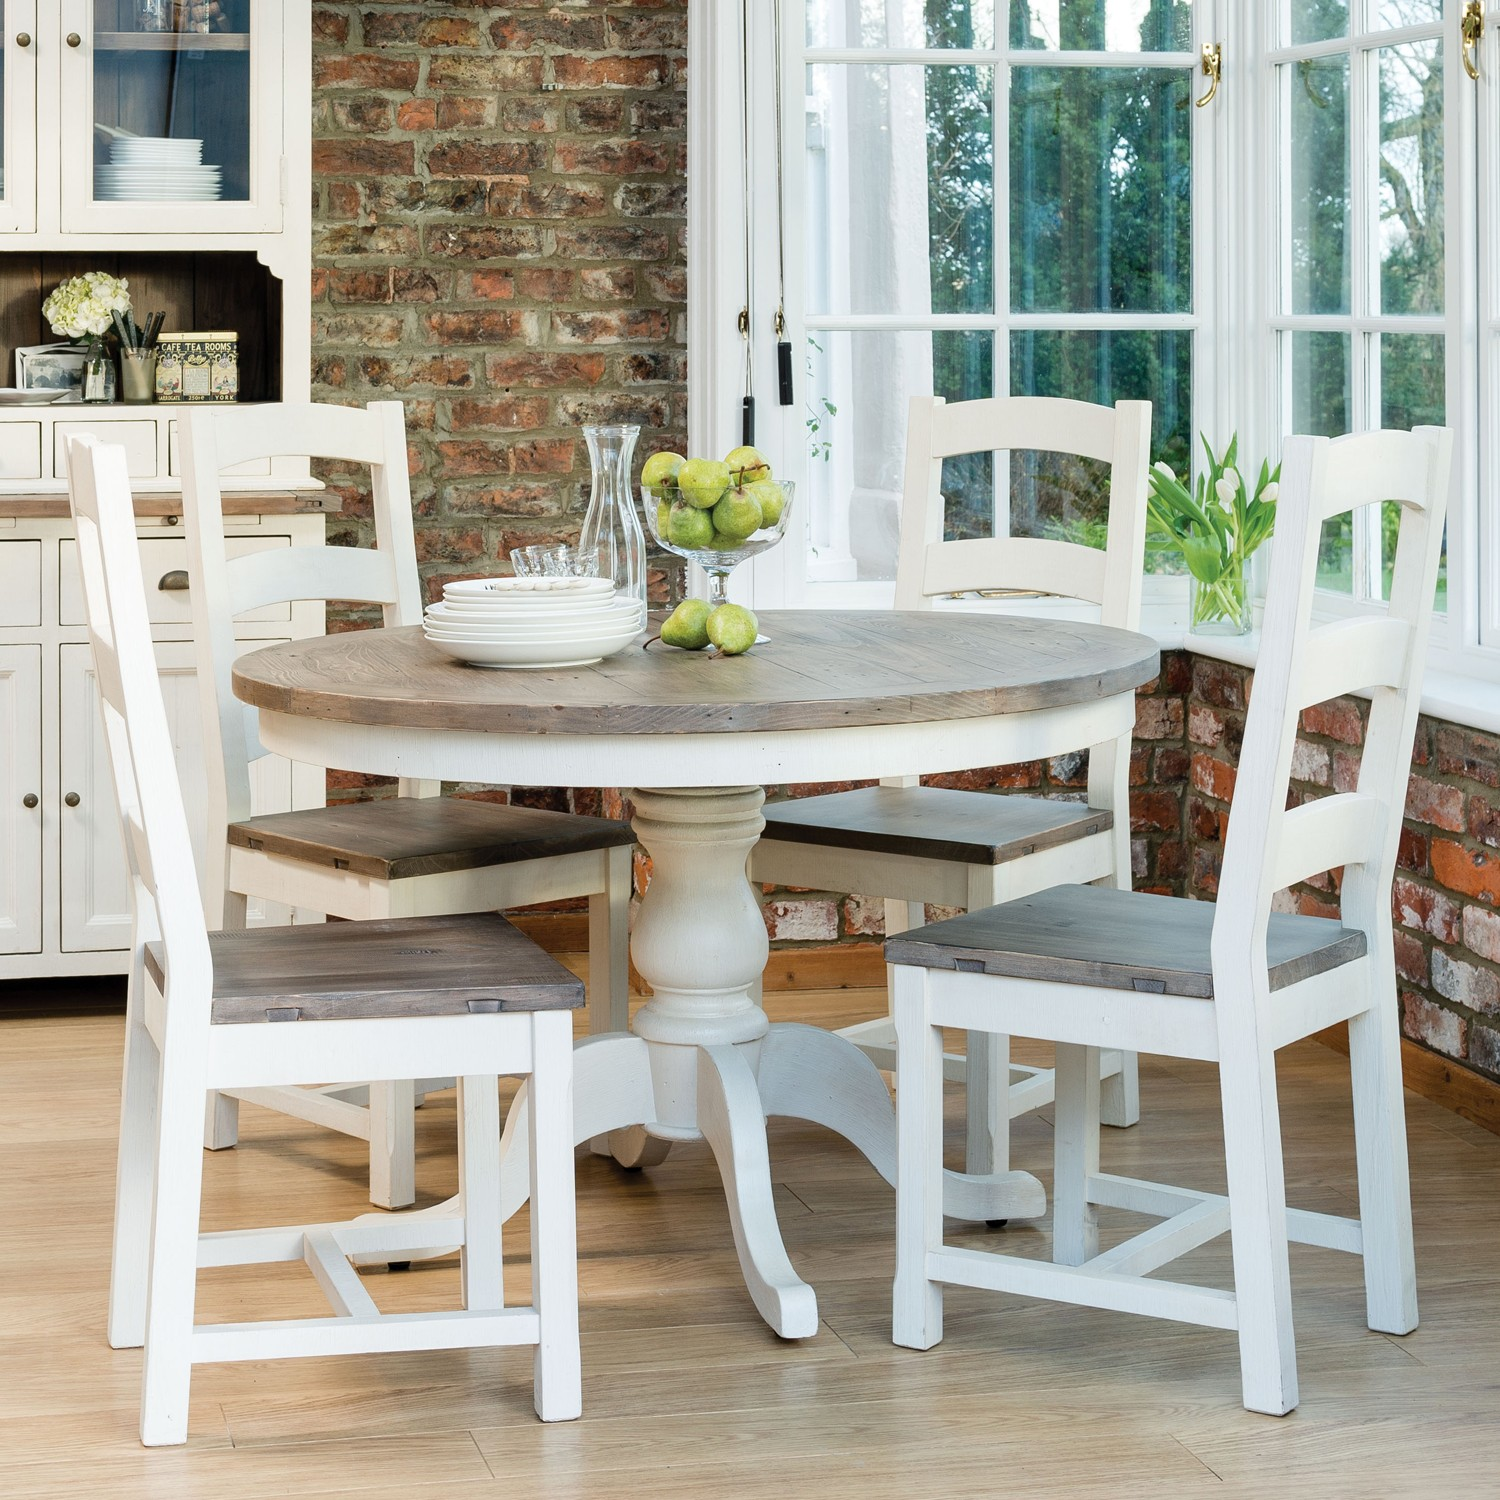 Cotswold circular table four wooden chairs dining set for Kitchen breakfast table sets